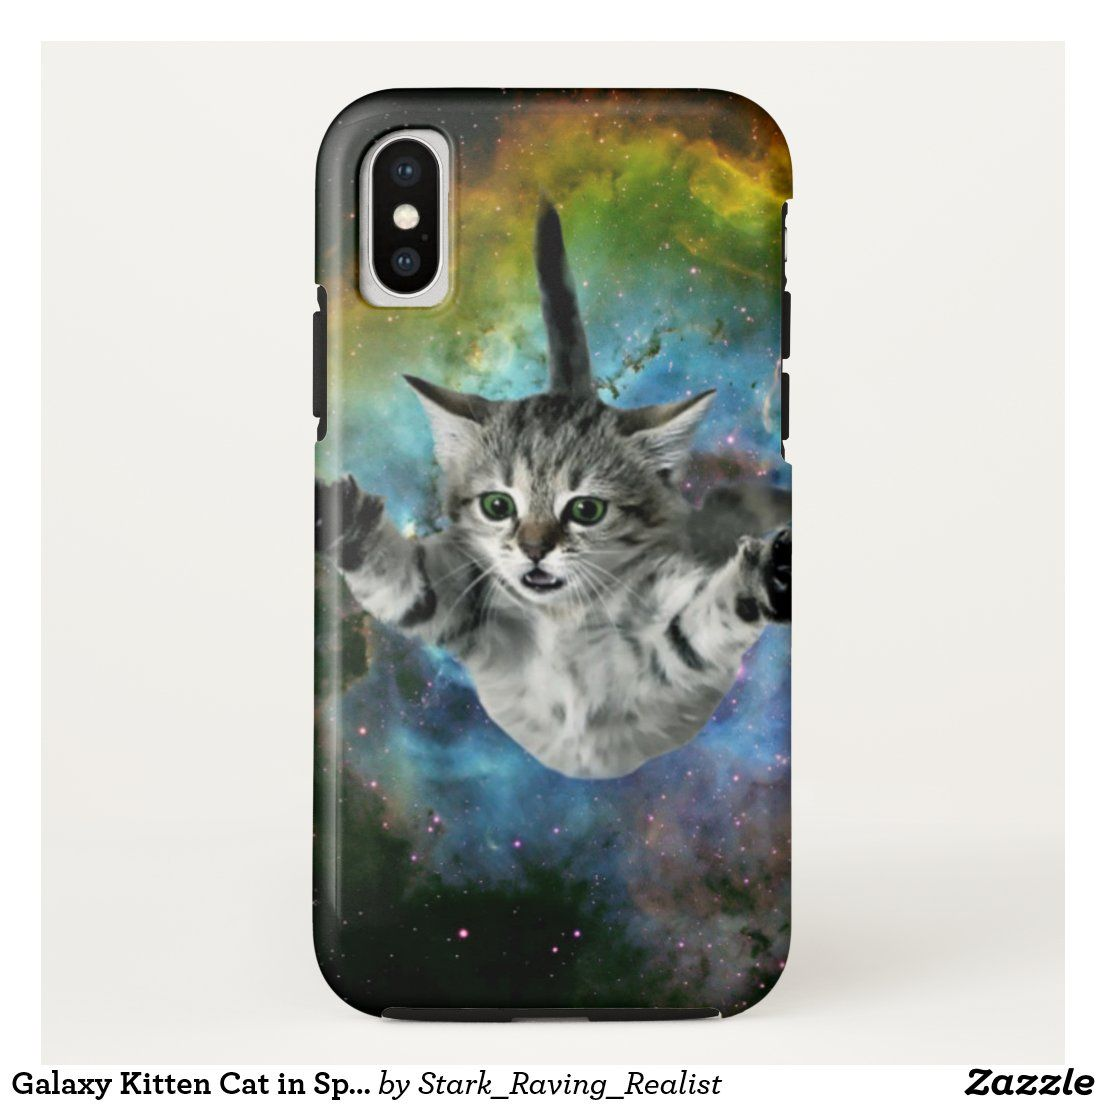 Galaxy Kitten Cat In Space Case Mate Iphone Case Zazzle Com In 2020 Galaxy Cat Iphone Cases Cats And Kittens